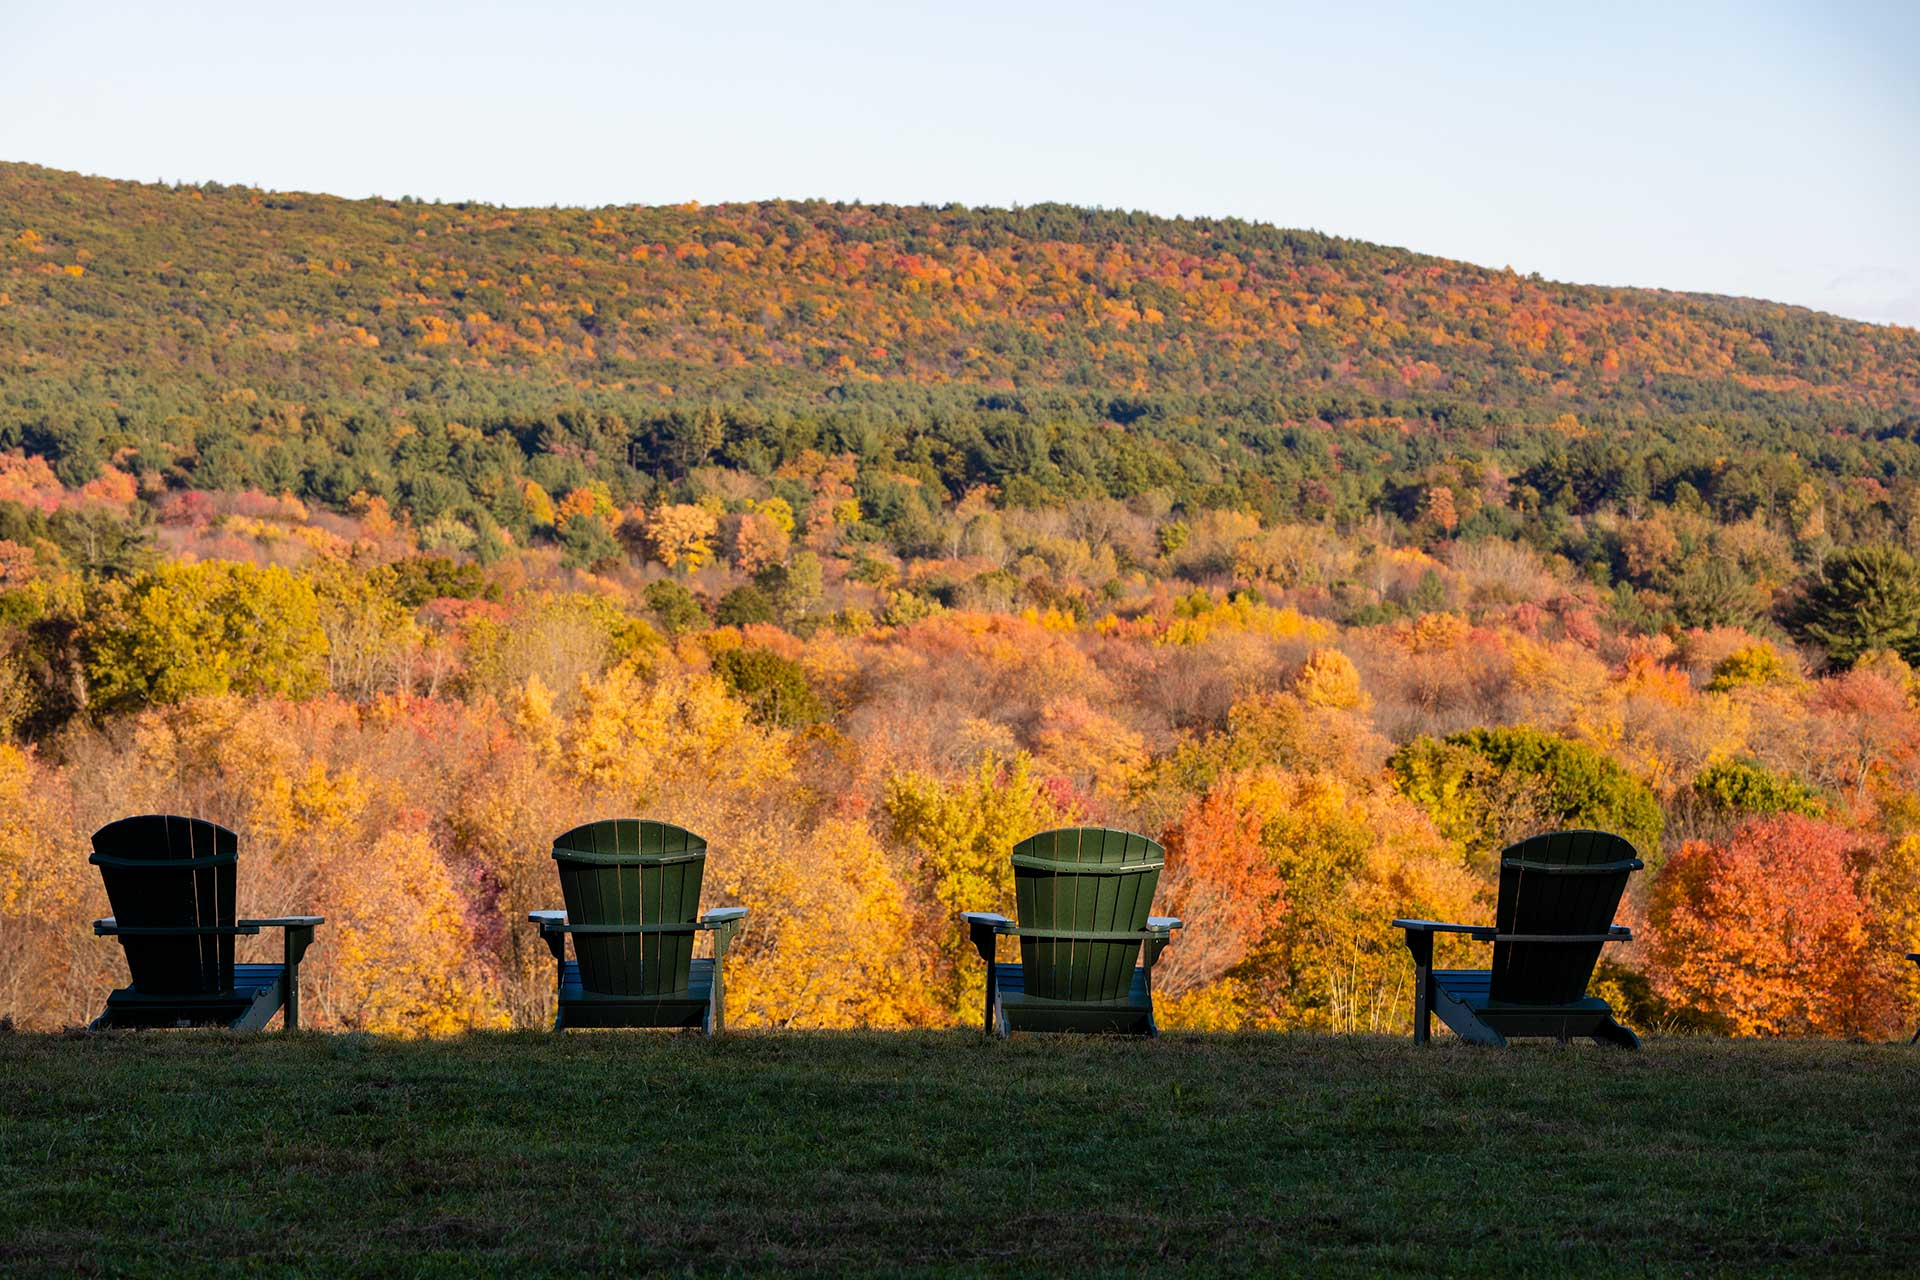 The fall colors are showcased on this view of the mt holyoke range